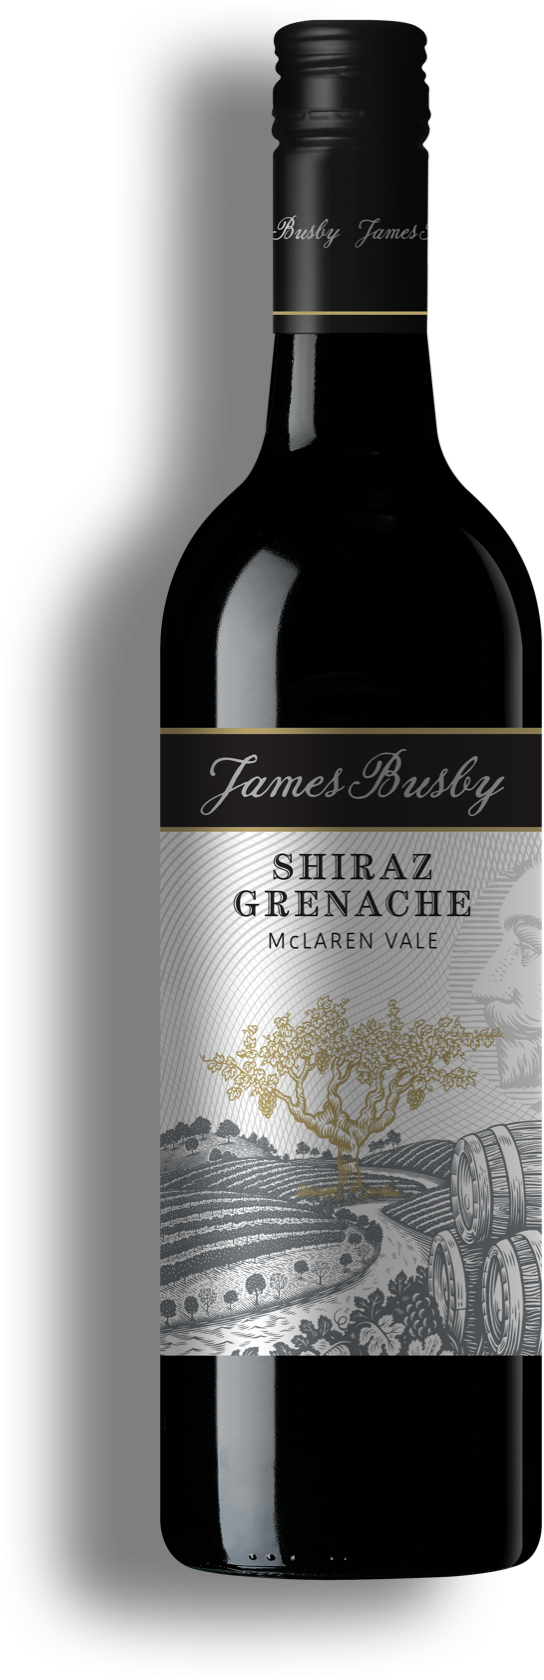 shiraz grenache wine bottle